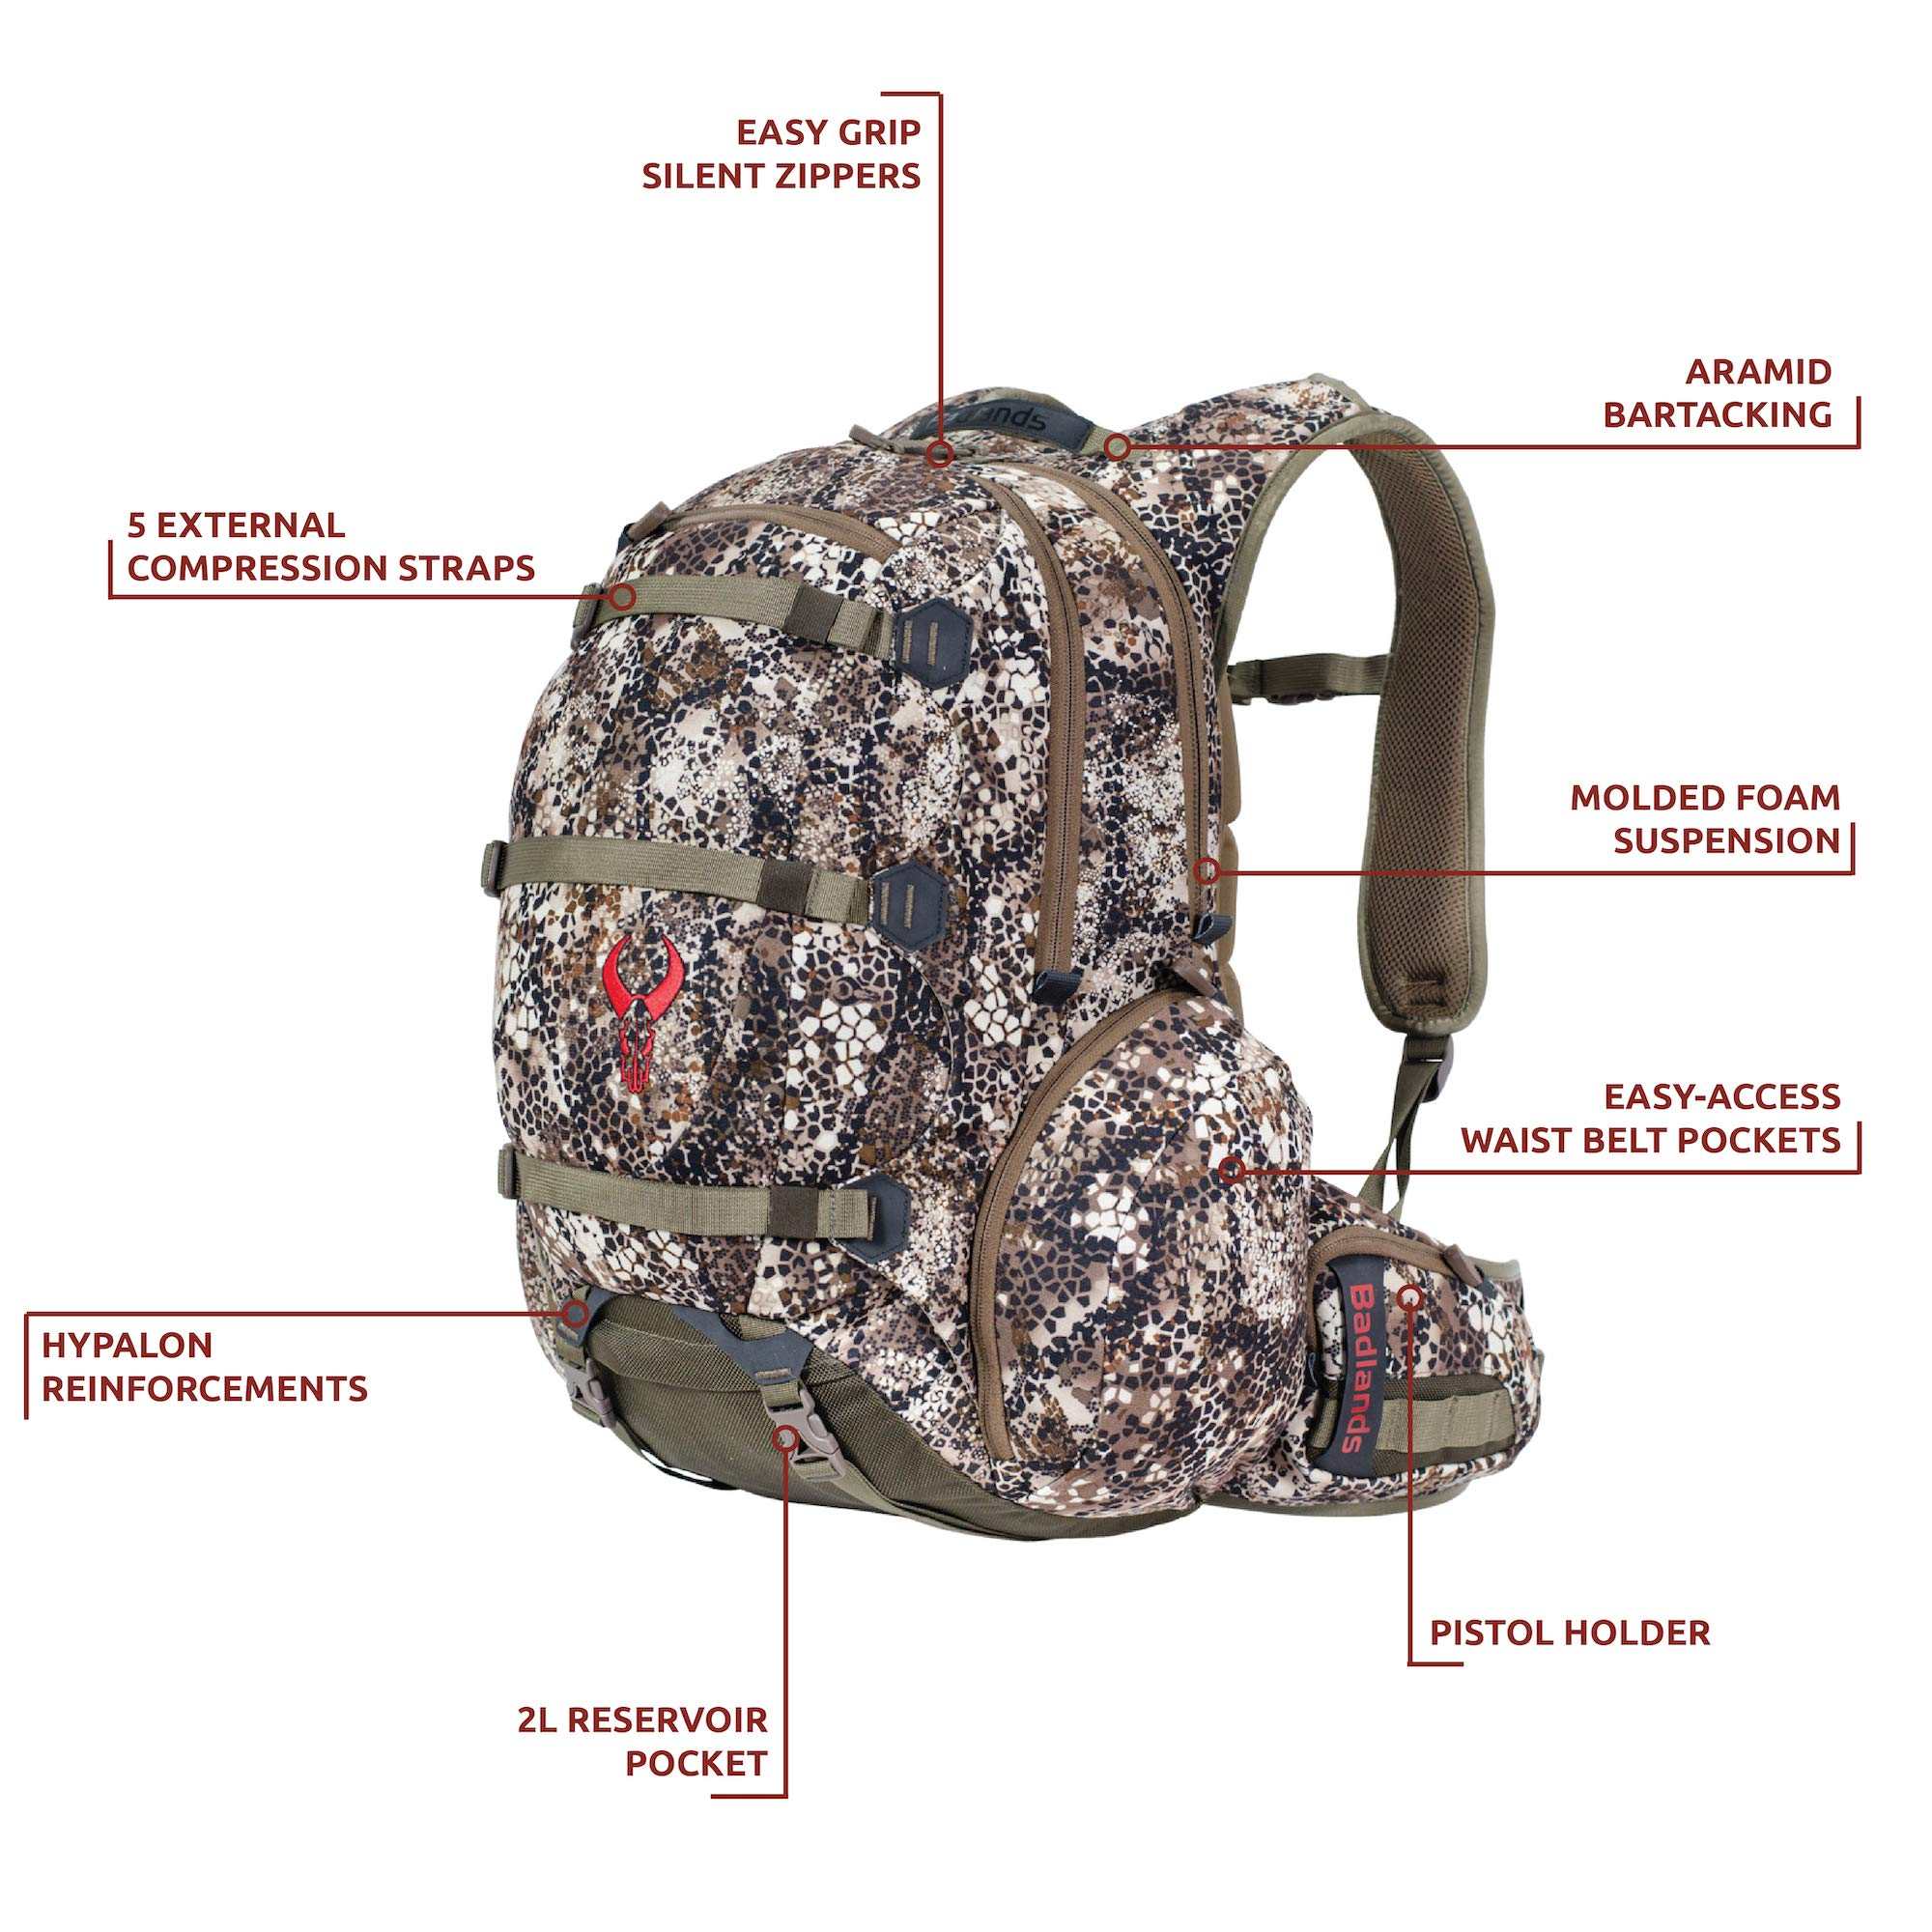 Badlands Superday Camouflage Hunting Backpack - Bow, Rifle, and Pistol Compatible, Approach FX by Badlands (Image #4)